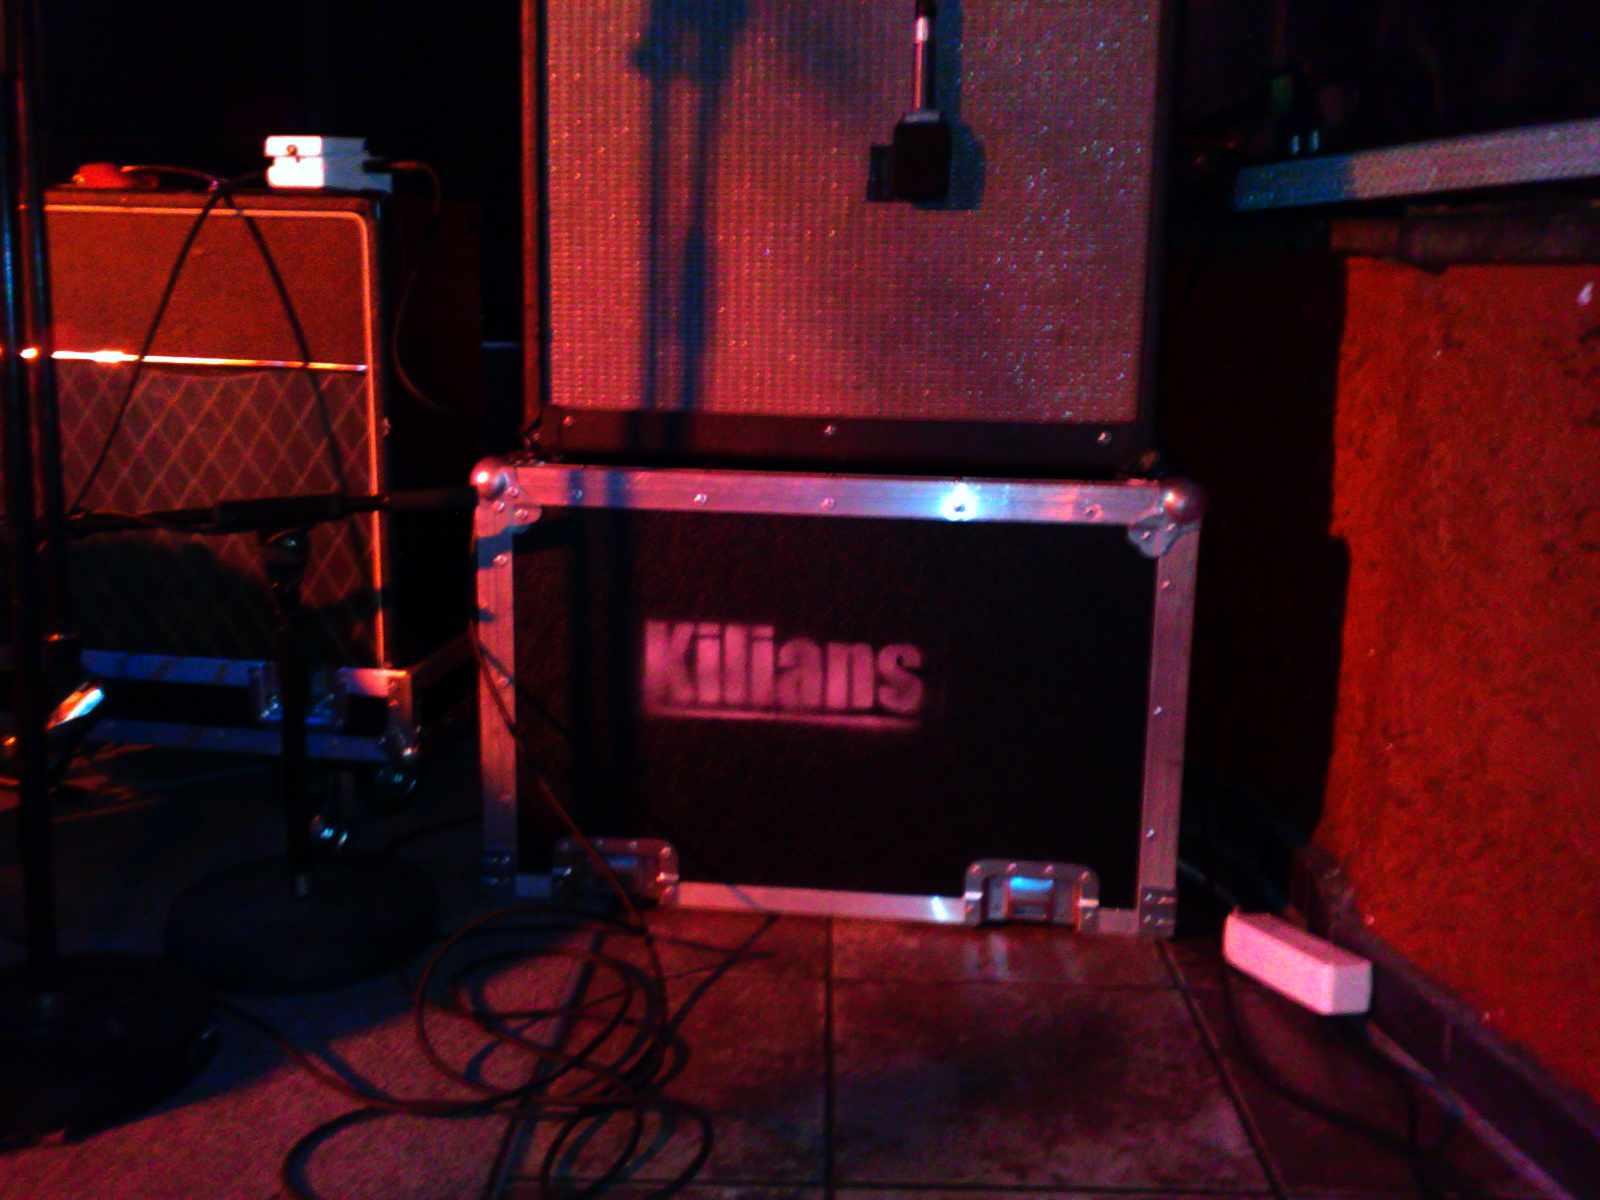 The Killians in Koblenz 2008